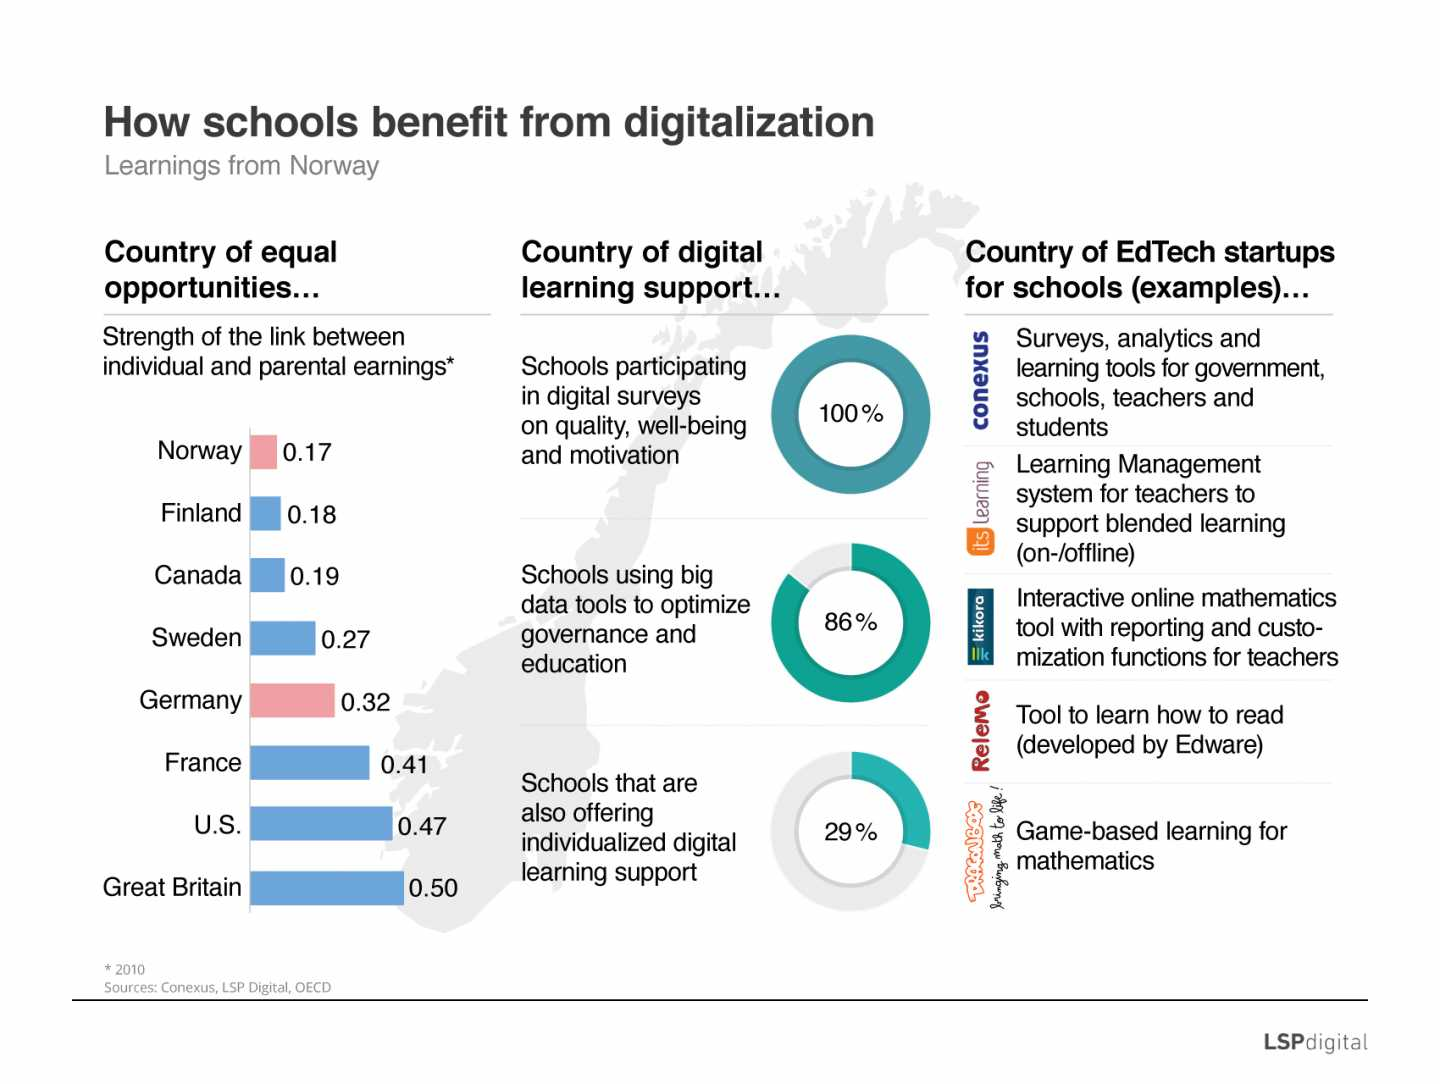 How school benefit from digitalization